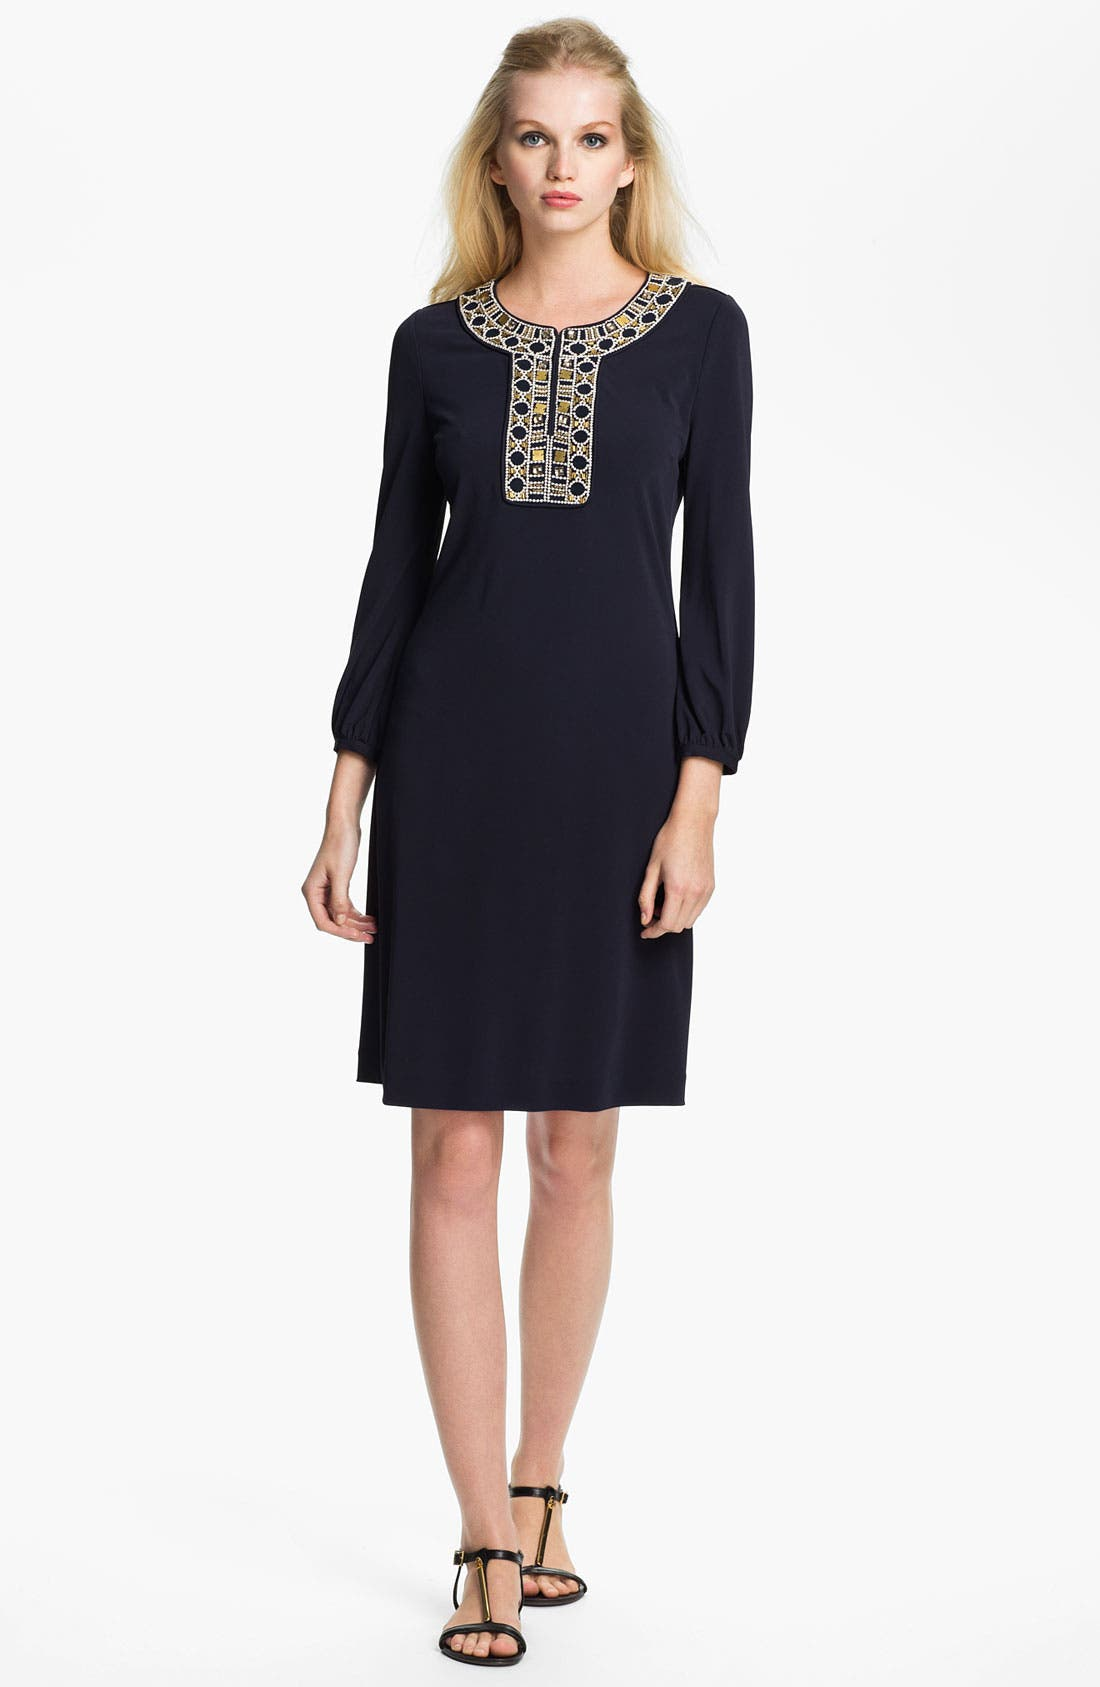 Alternate Image 1 Selected - Tory Burch 'Carissa' Embellished Sheath Dress